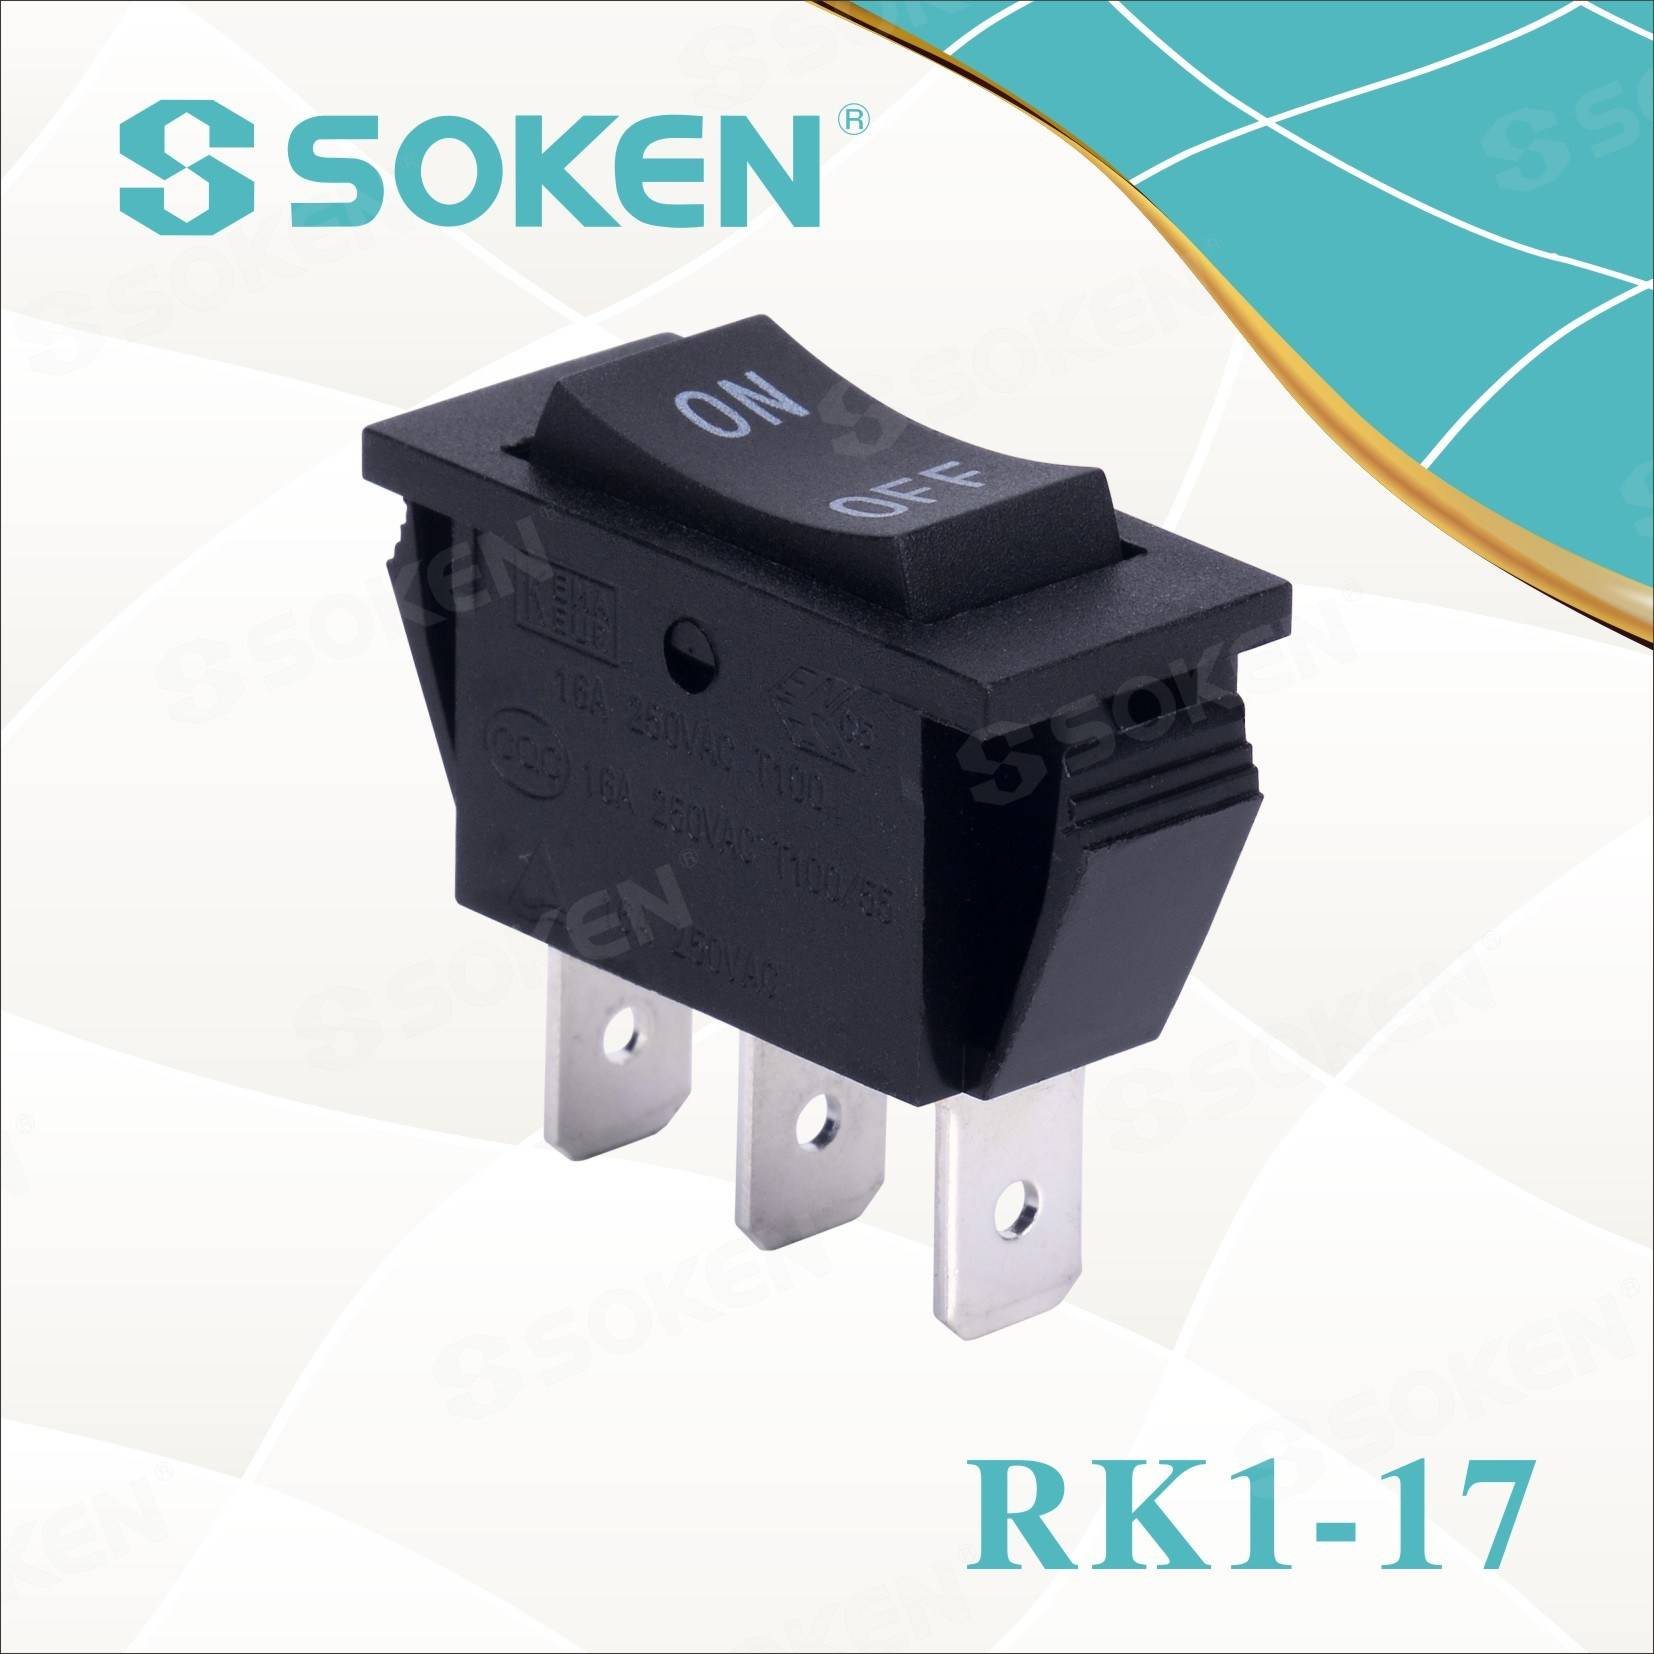 Special Price for Shutter Key Switch -